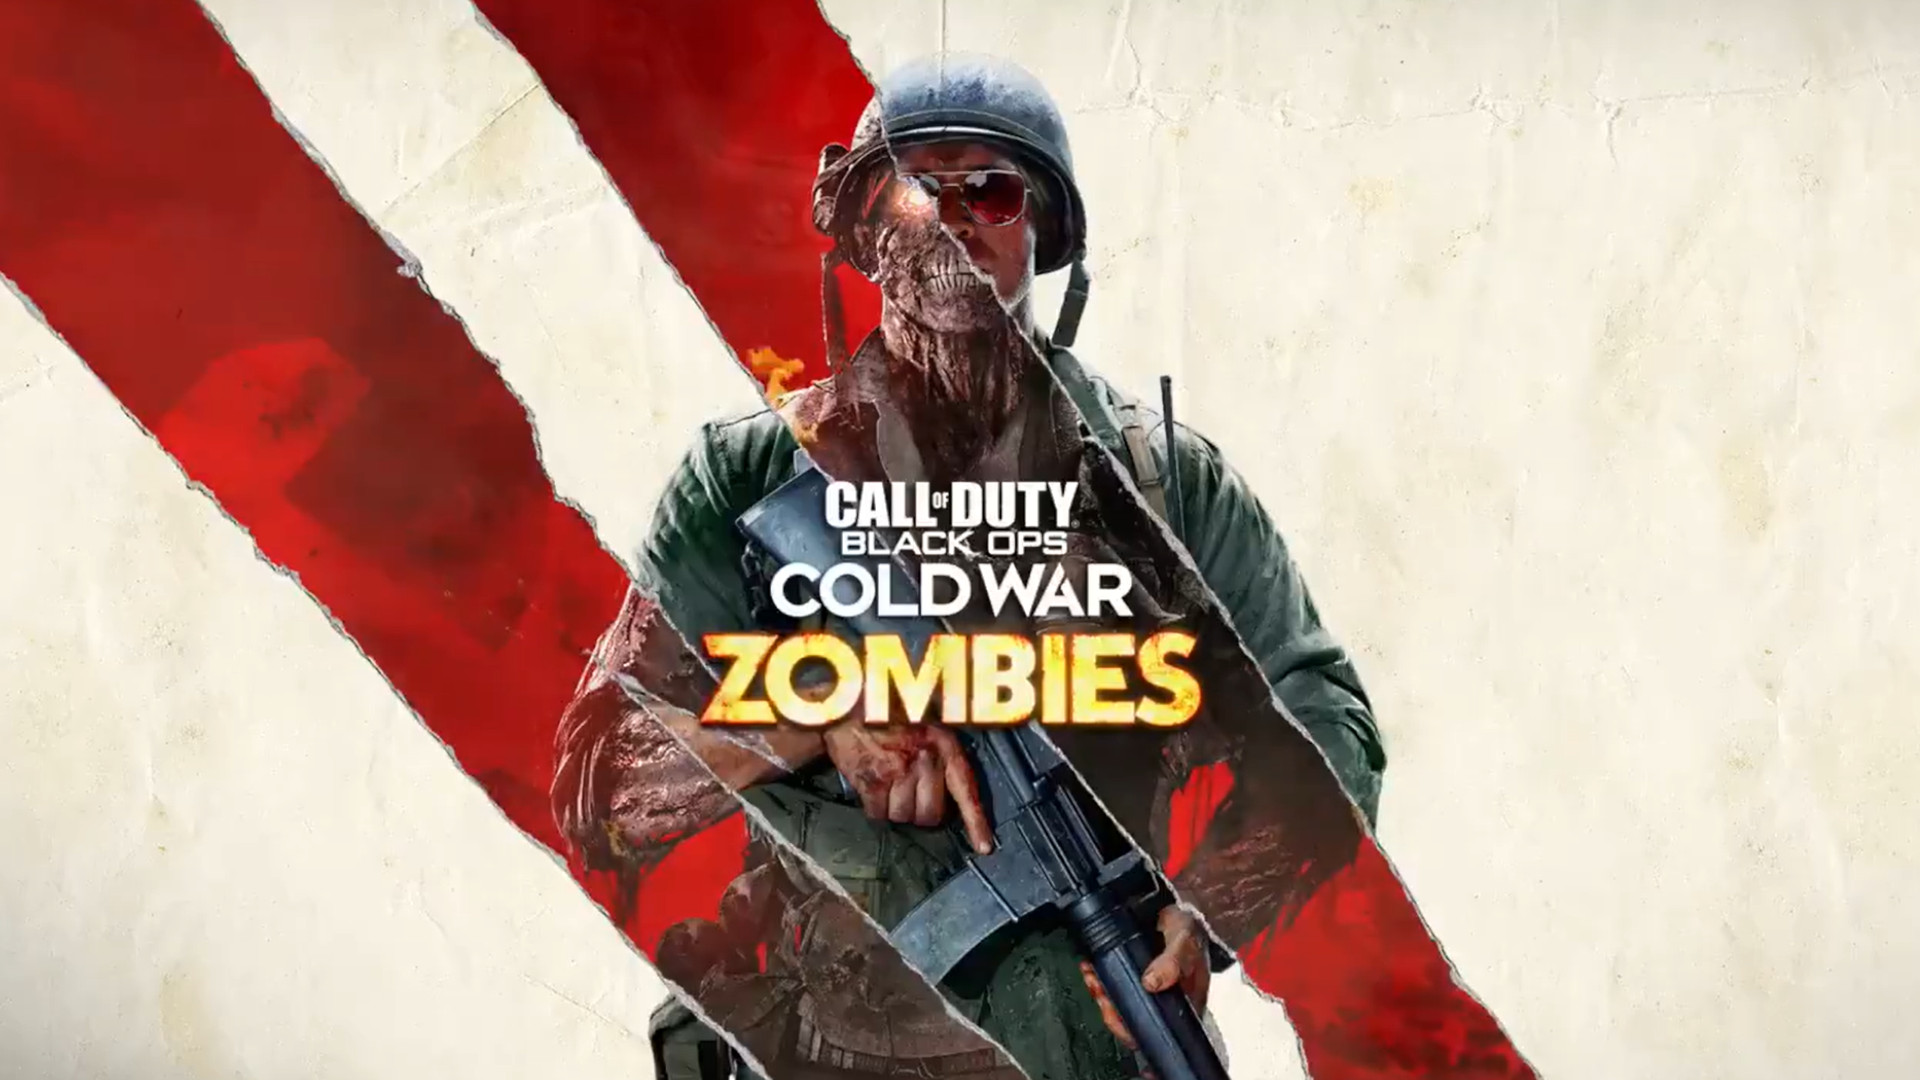 Call of duty black ops cold war zombies reveal